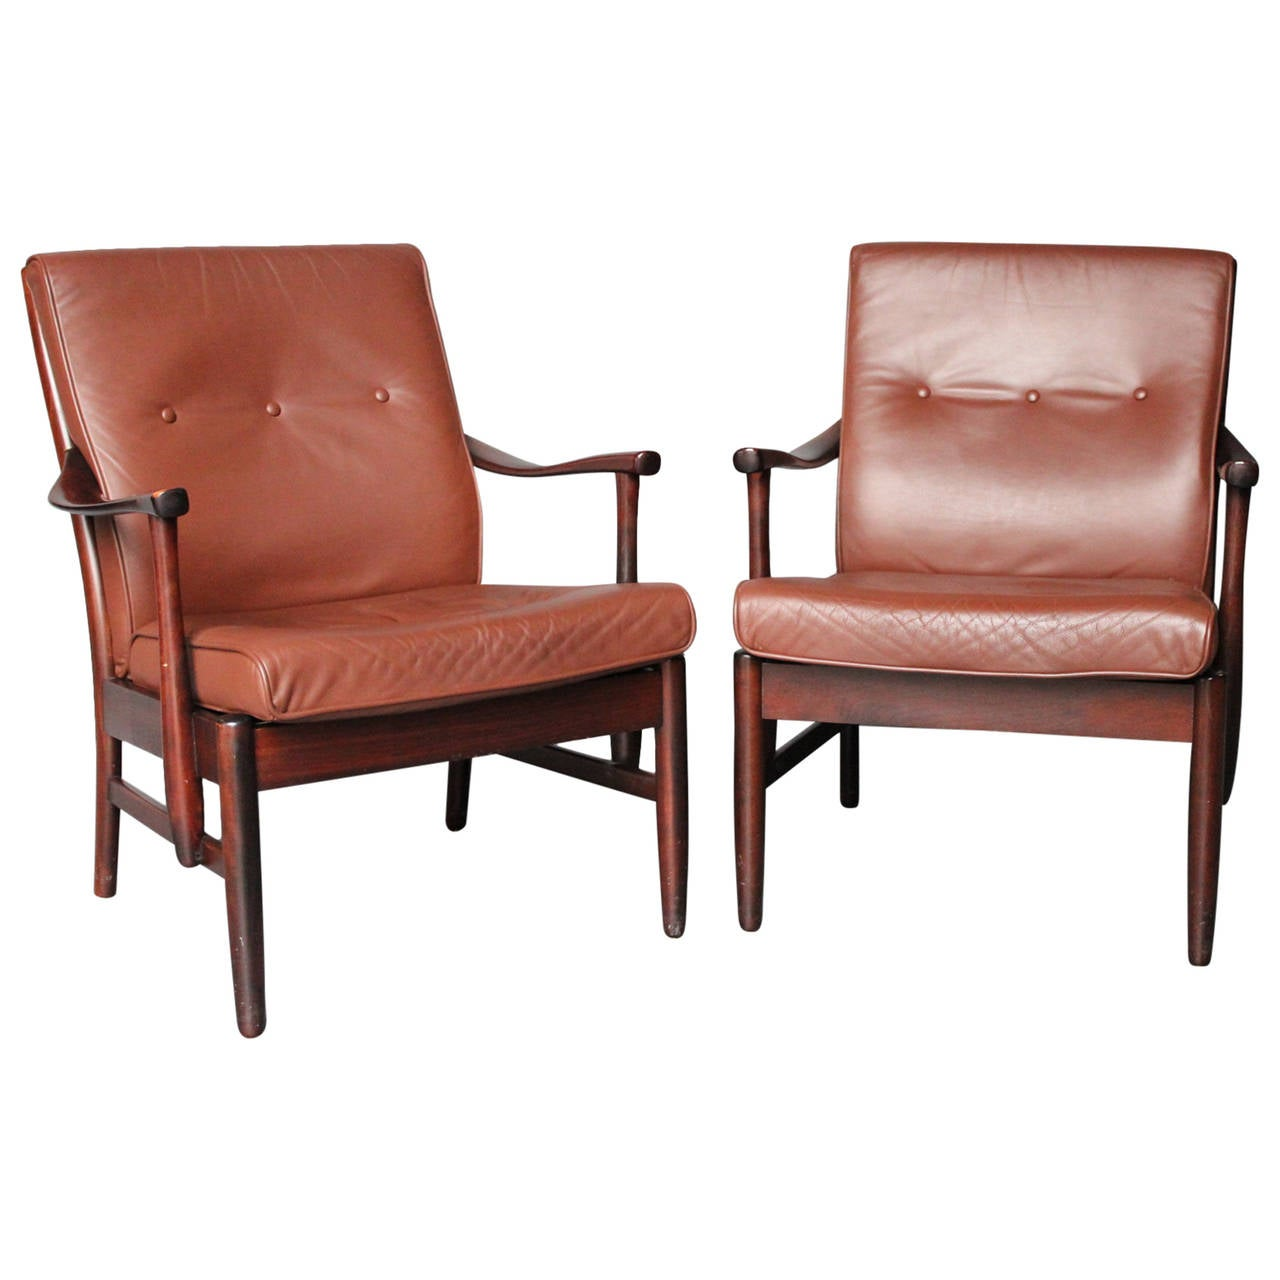 A pair of Armchairs by a Danish Cabinetmaker, c. 1960